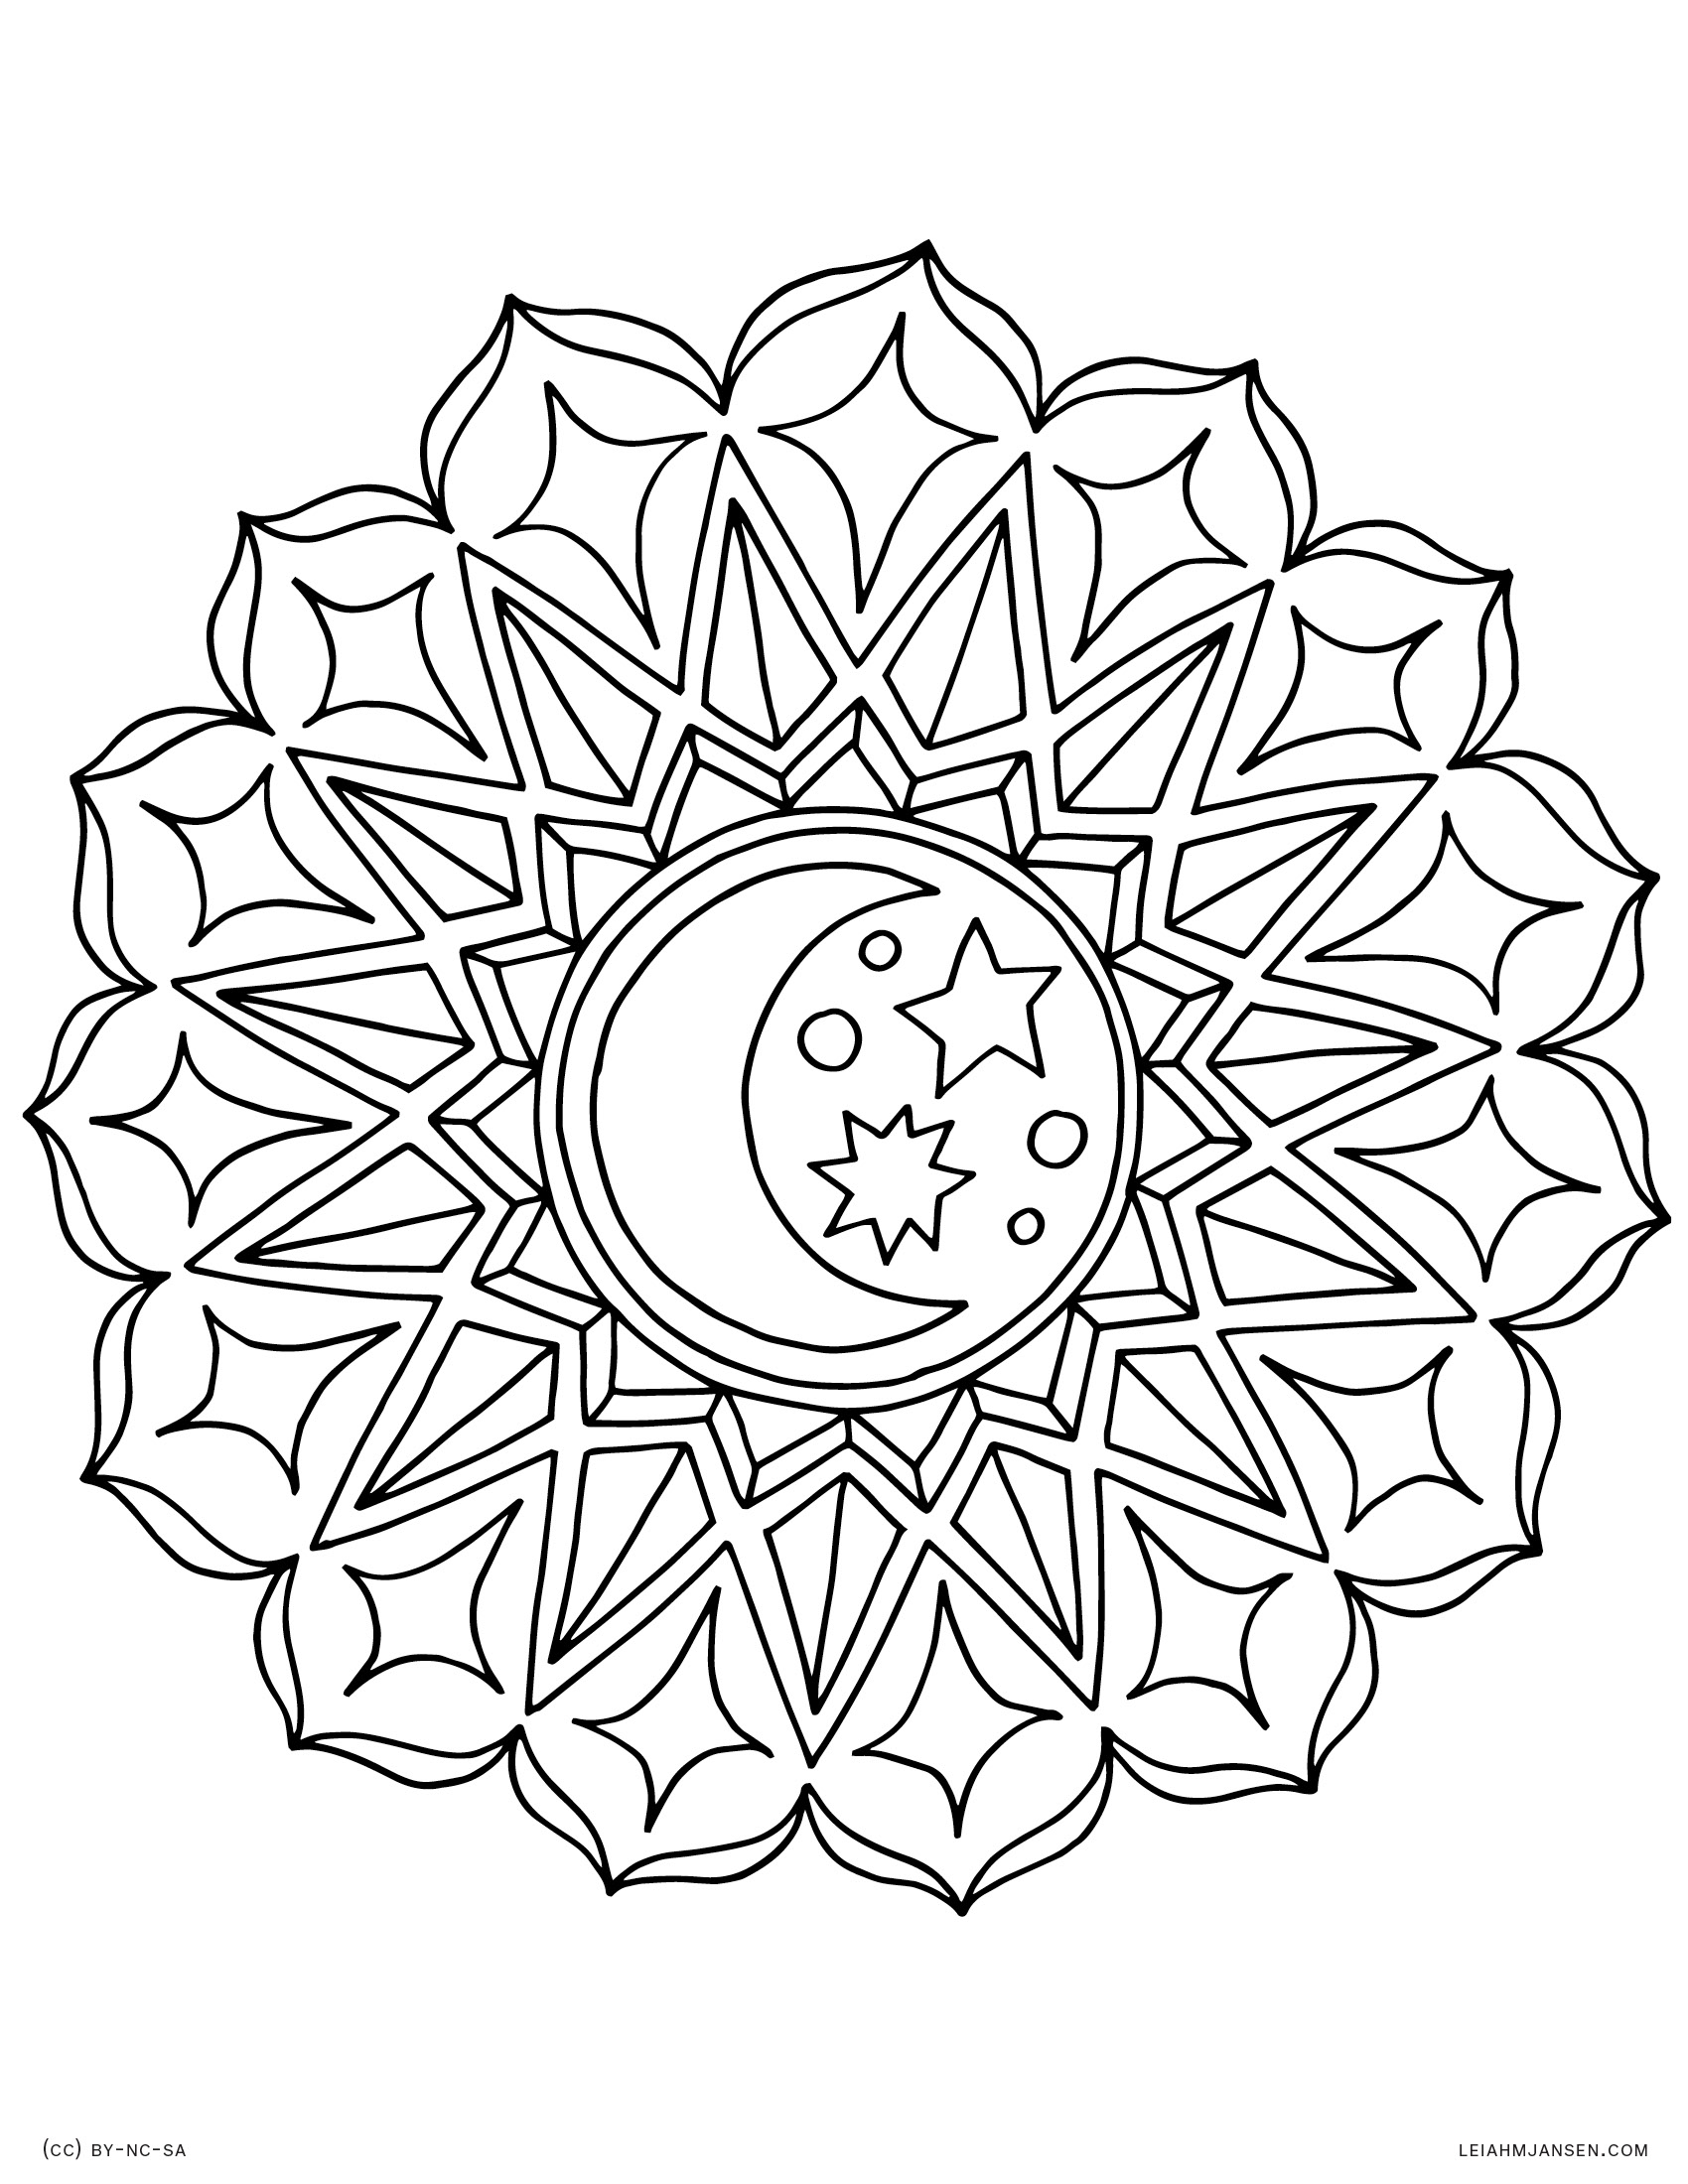 free mandalas coloring pages - photo#28